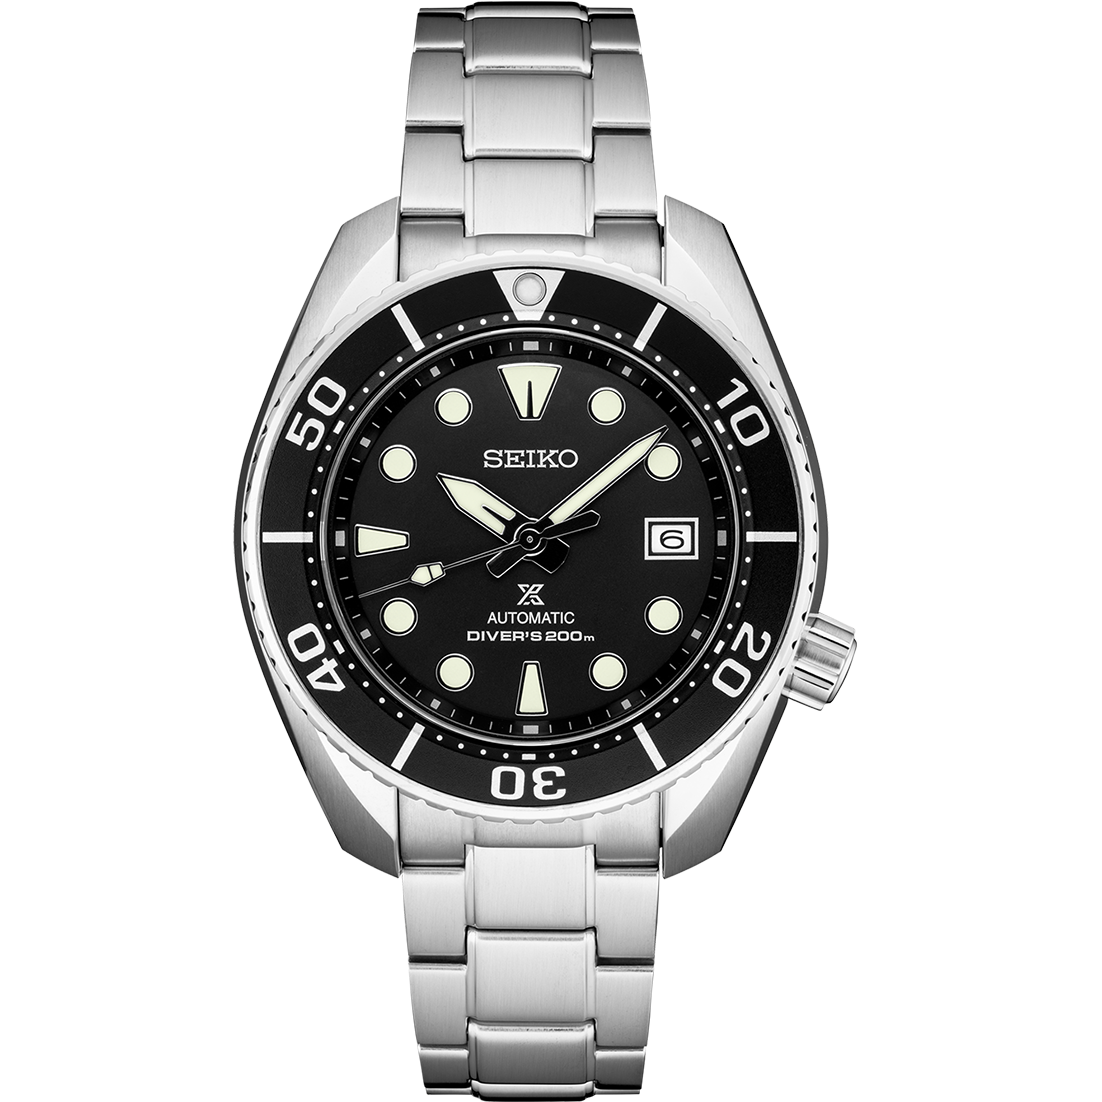 Seiko Stainless Steel 45mm Prospex Diver's 200m Automatic Watch (SPB101)